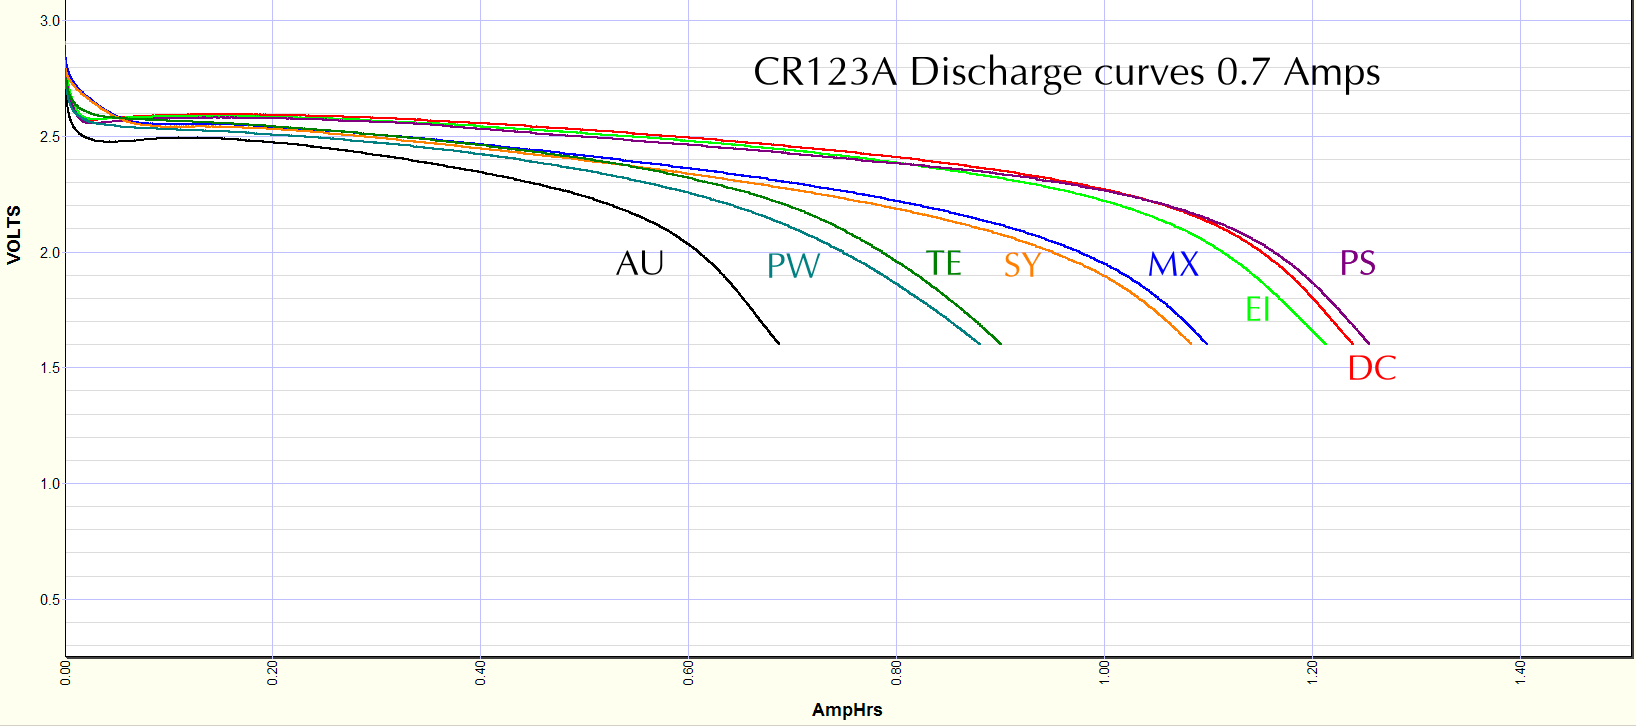 CR123A cells discharged at 700 mA